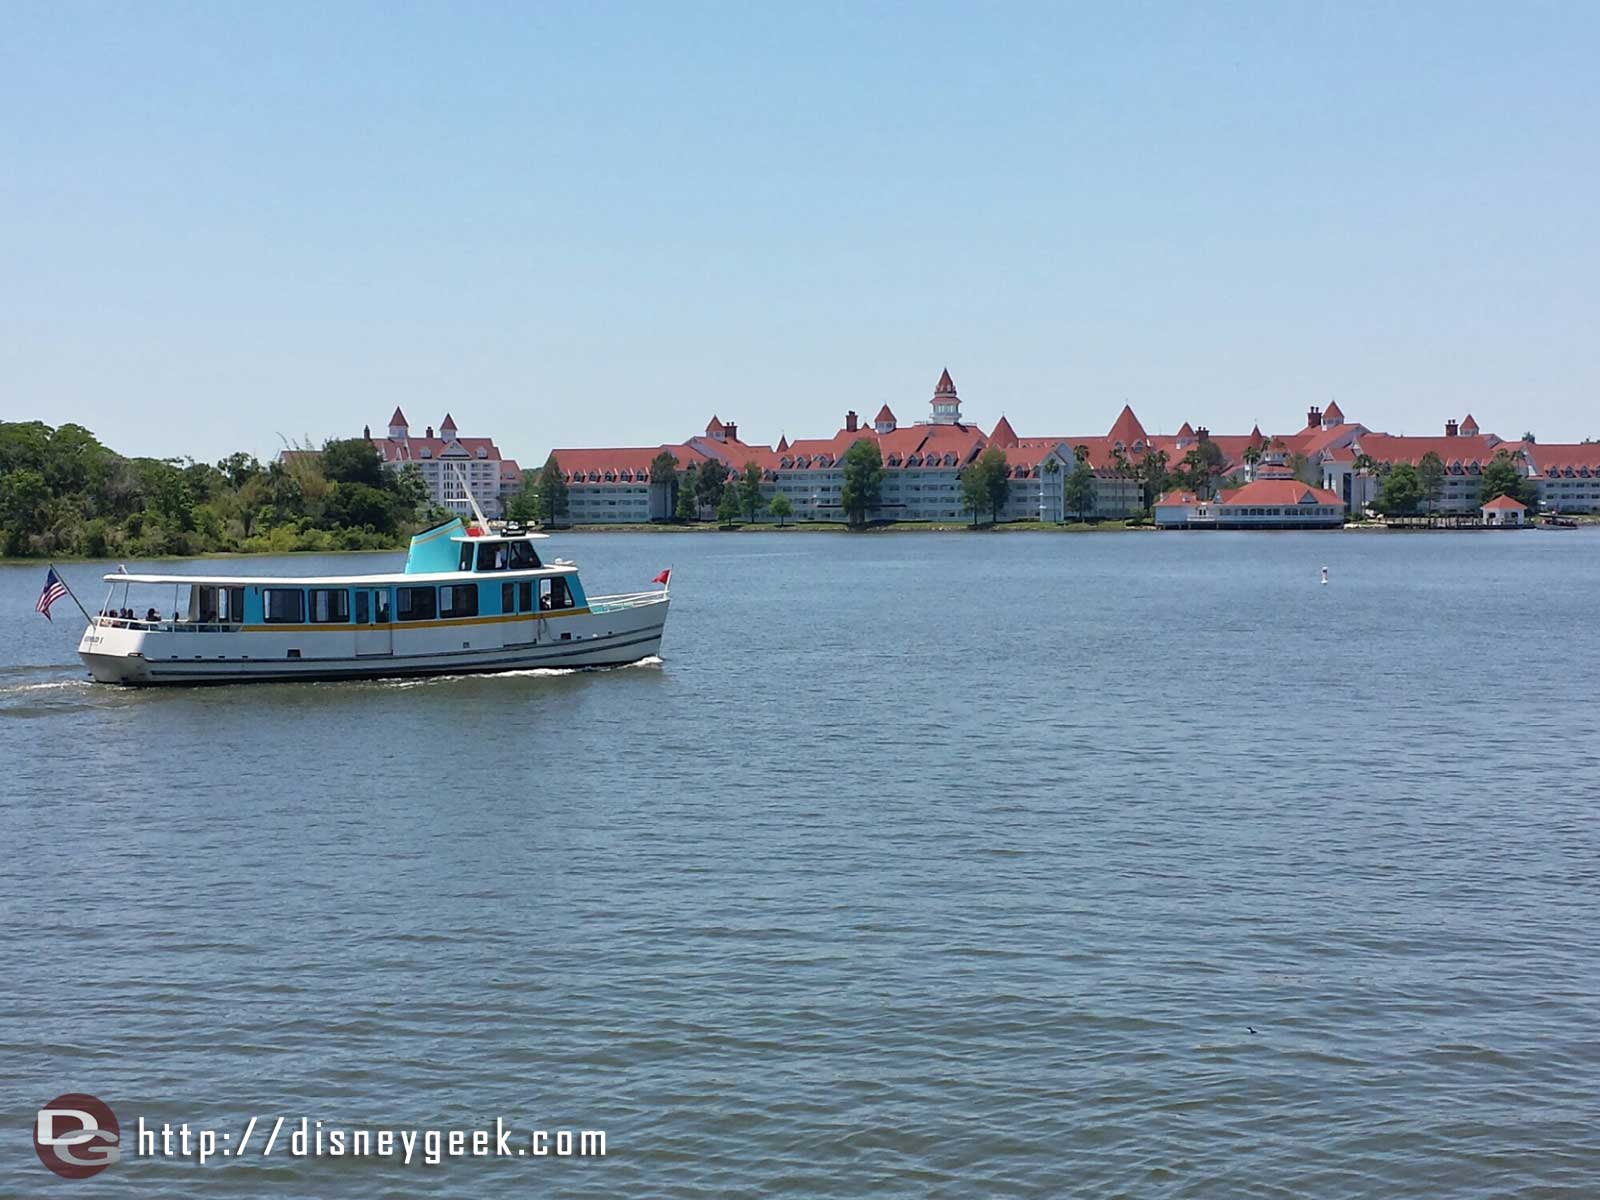 Cruising across the Seven Seas Lagoon – Grand Floridian and the Mermaid I in the foreground #WDW